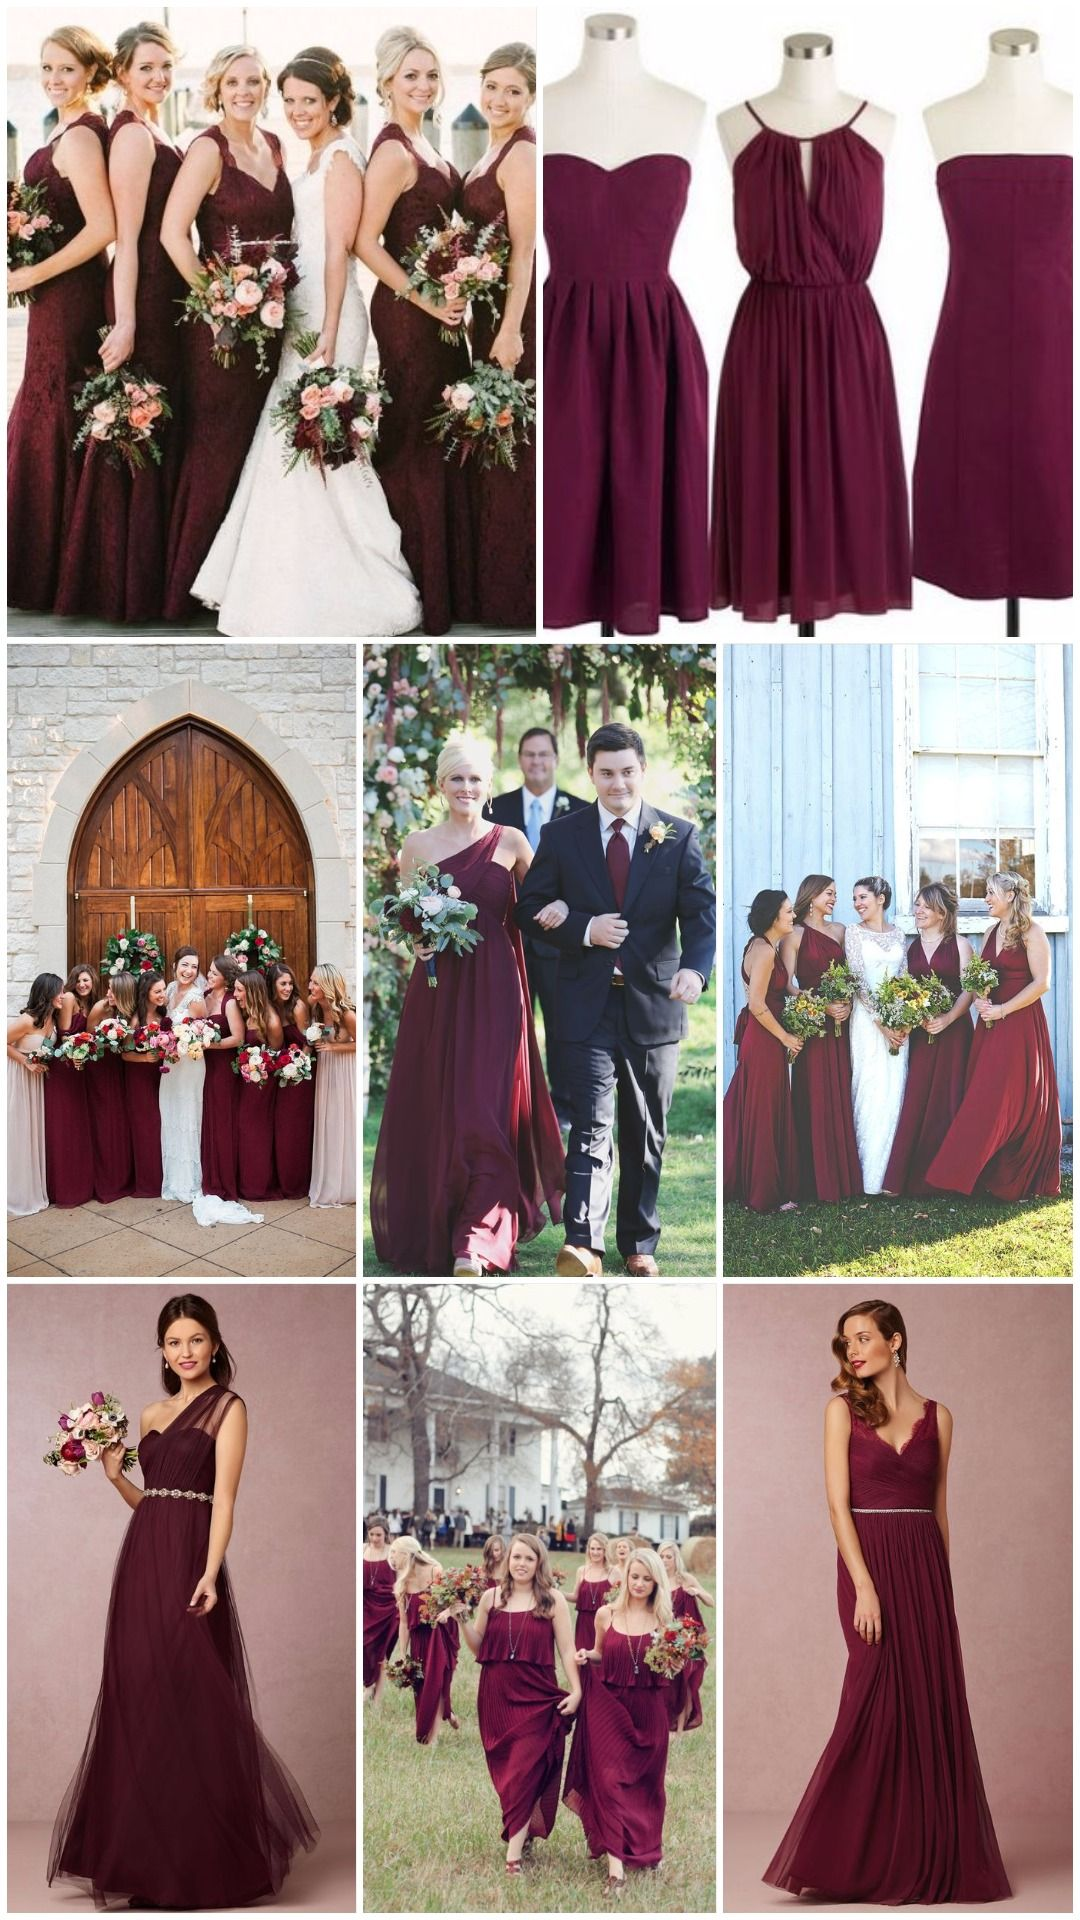 Burgundymarsalacabernet bridesmaid dresses autumn magic burgundymarsalacabernet bridesmaid dresses ombrellifo Images